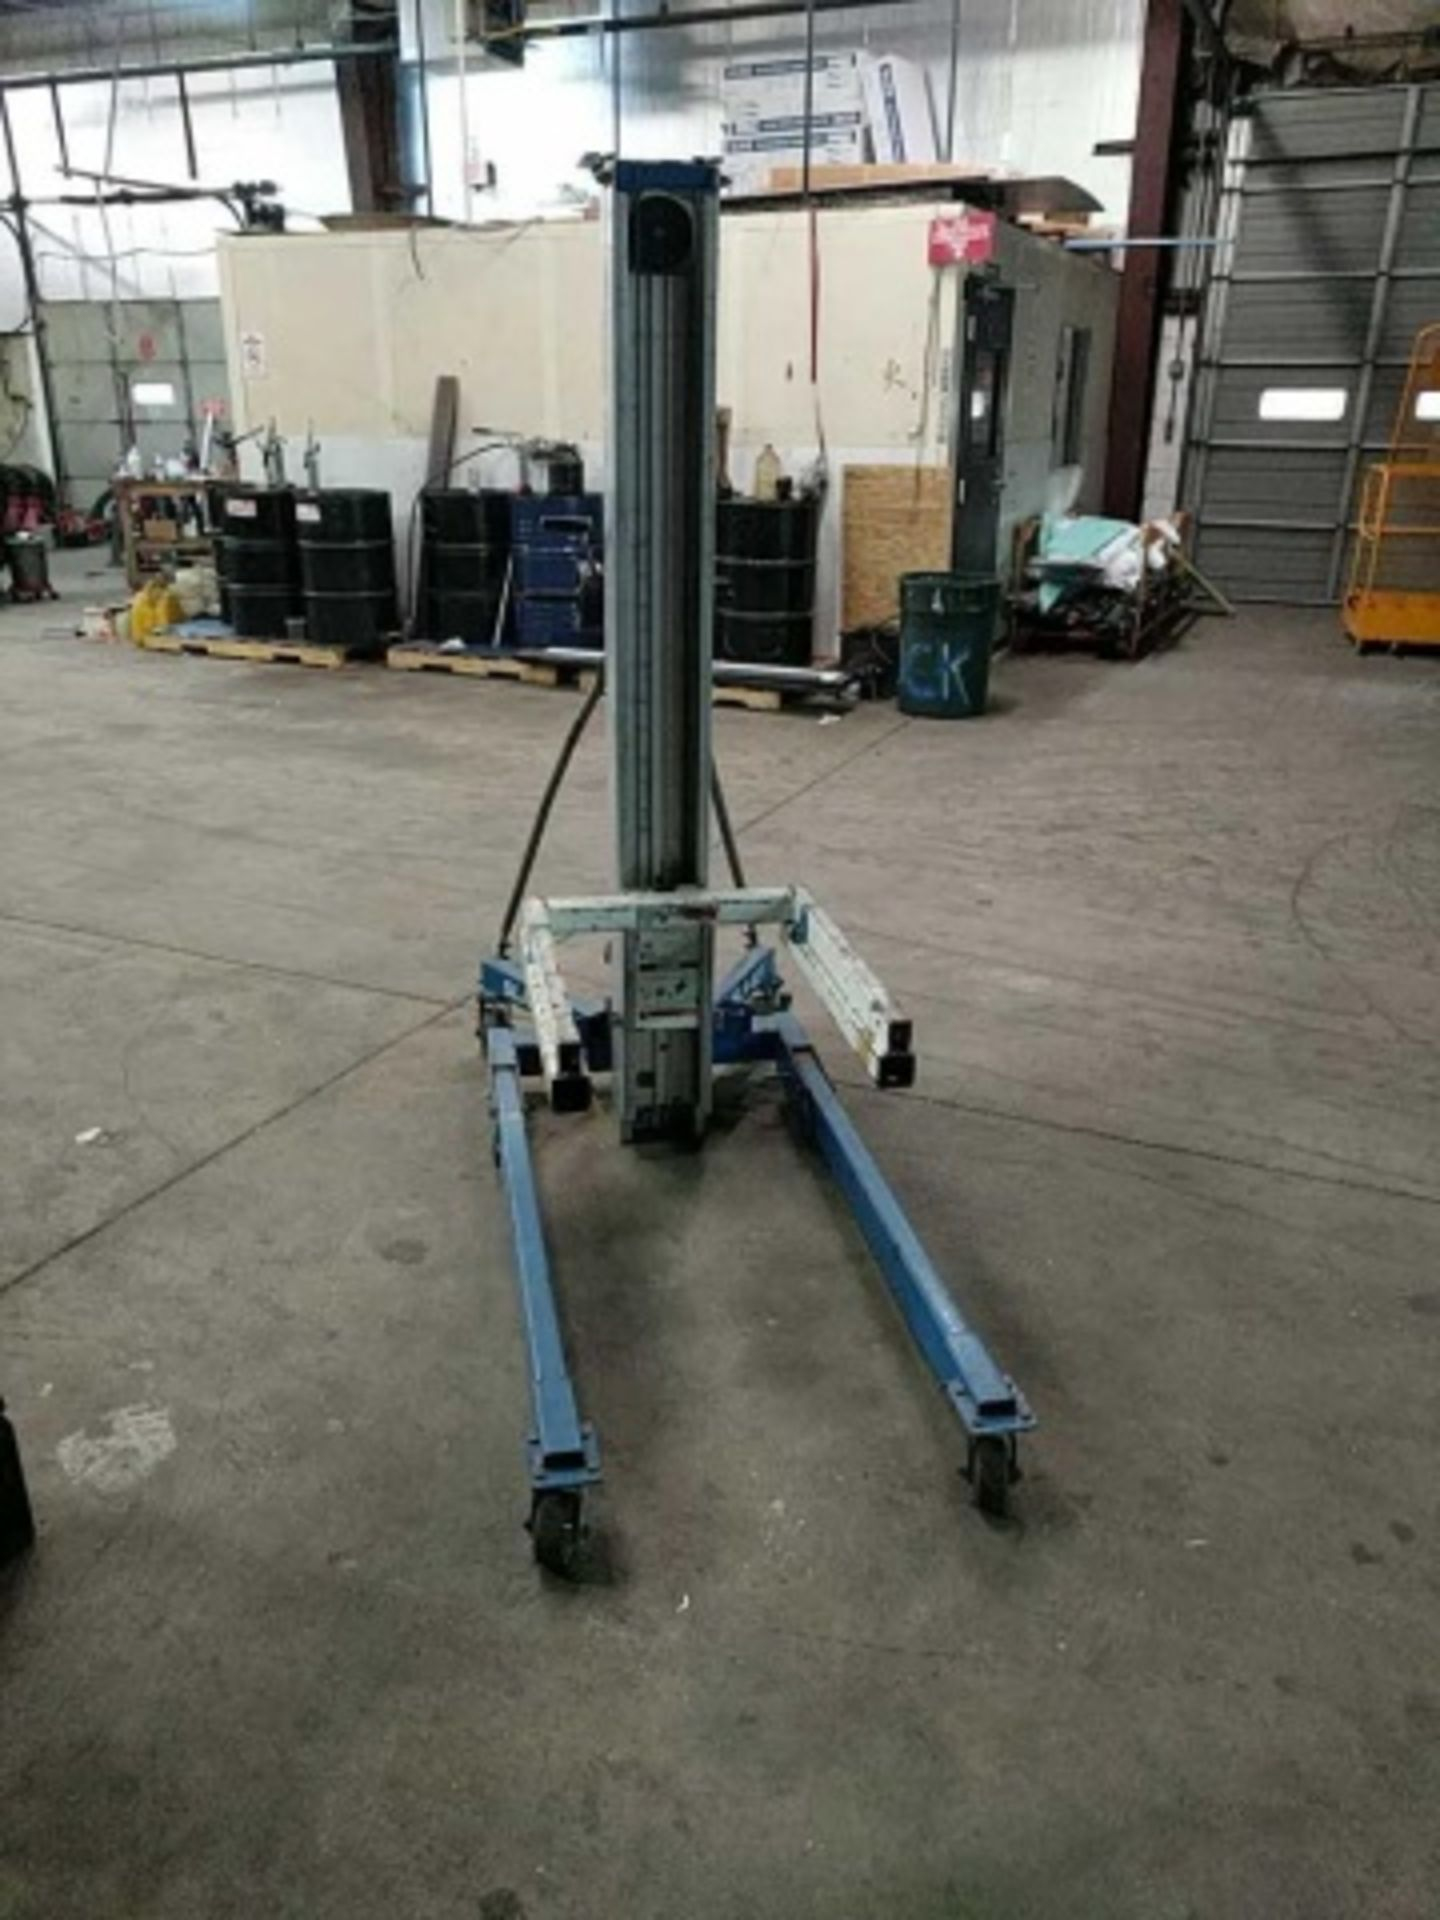 Genie Superlift Advantage Manual Material Lift - Image 5 of 5